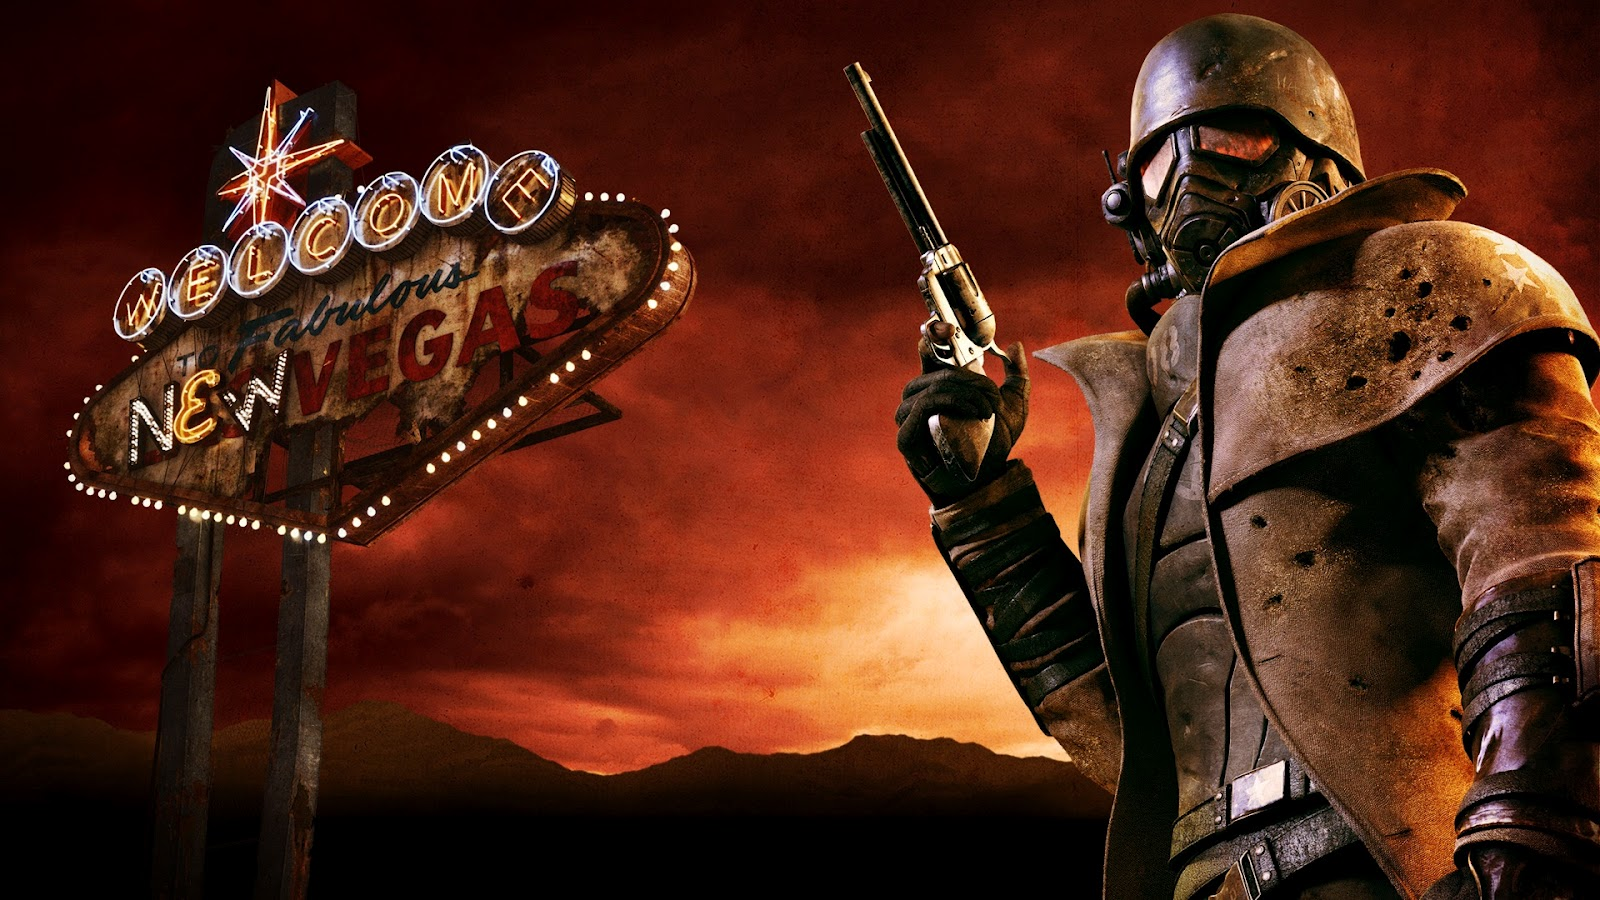 fallout nv wallpaper - photo #14